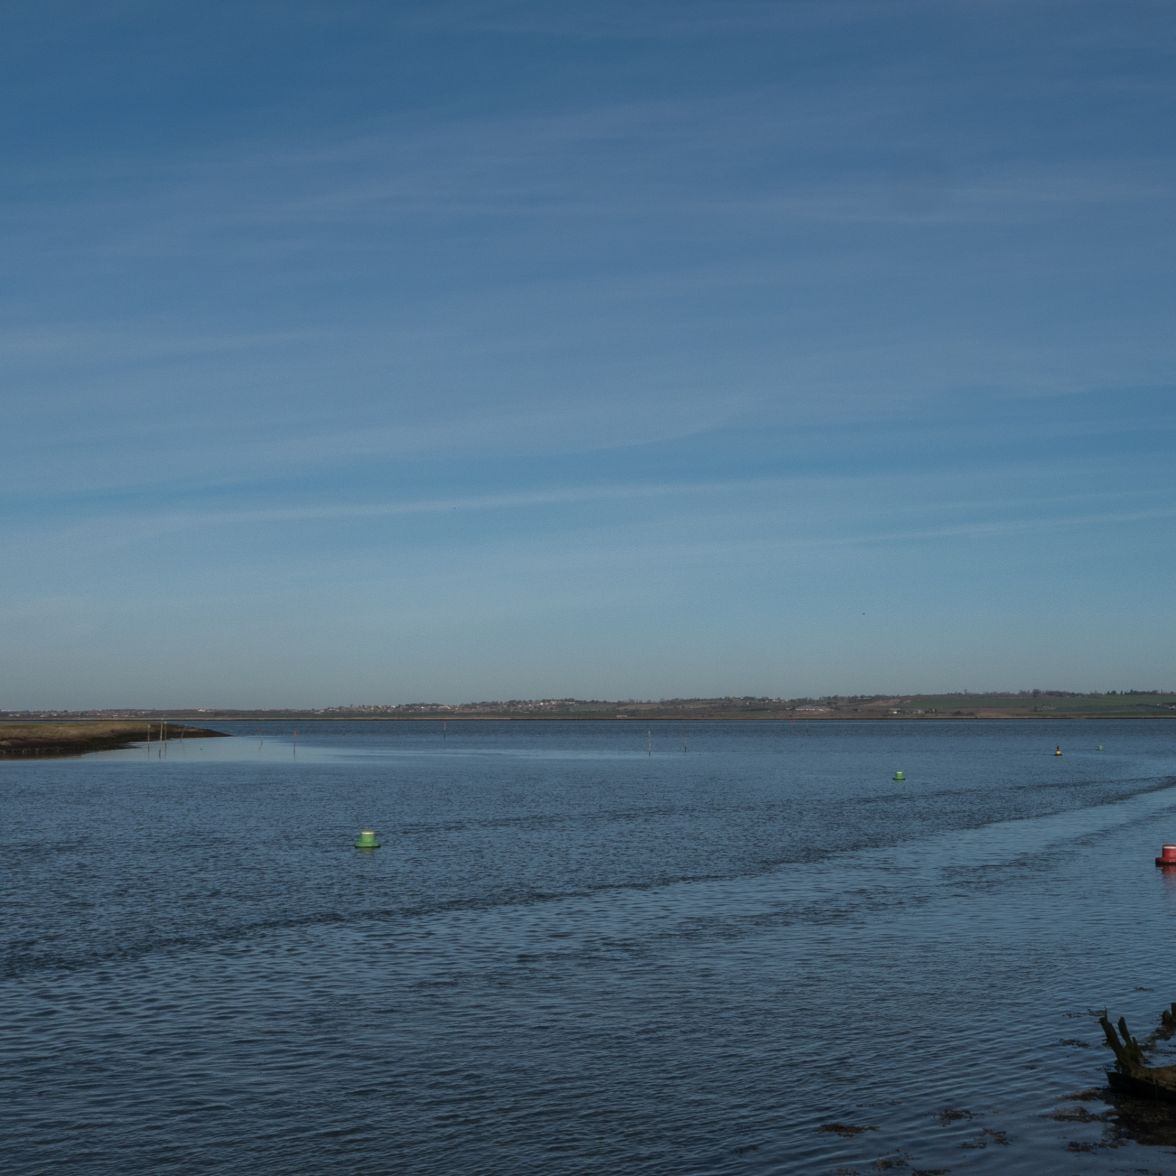 Yacht leaving Conyer creek on the flood tide for the Swale